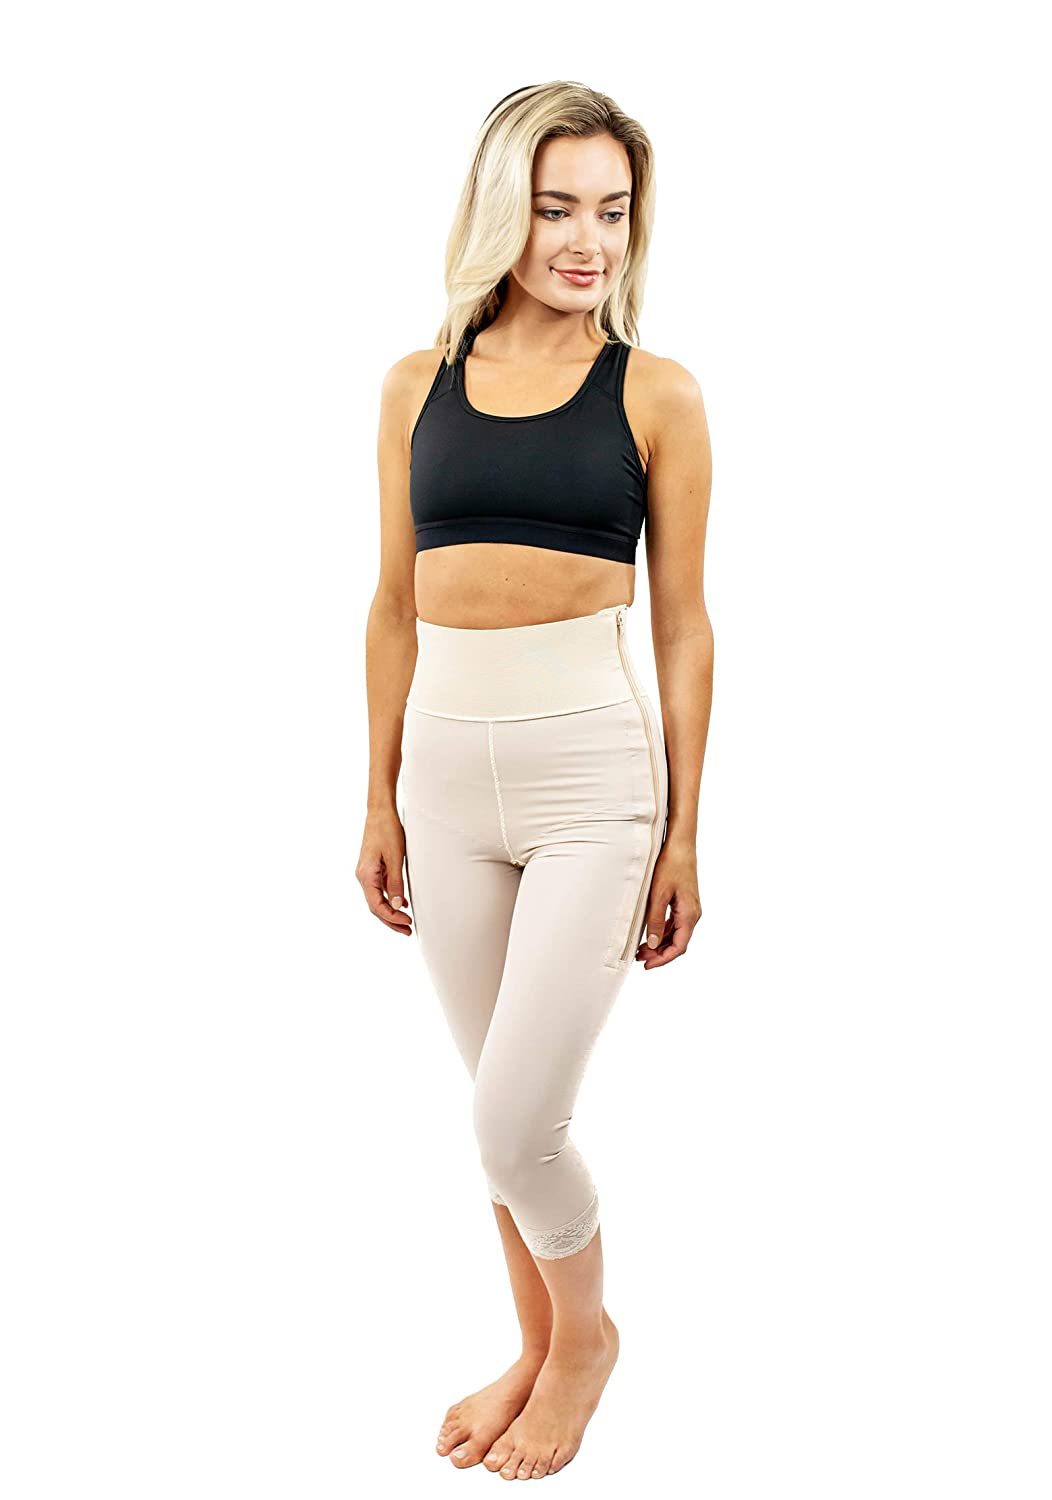 230d1aae6 ContourMD Post Surgery Compression Shorts Mid Calf High Waisted 4